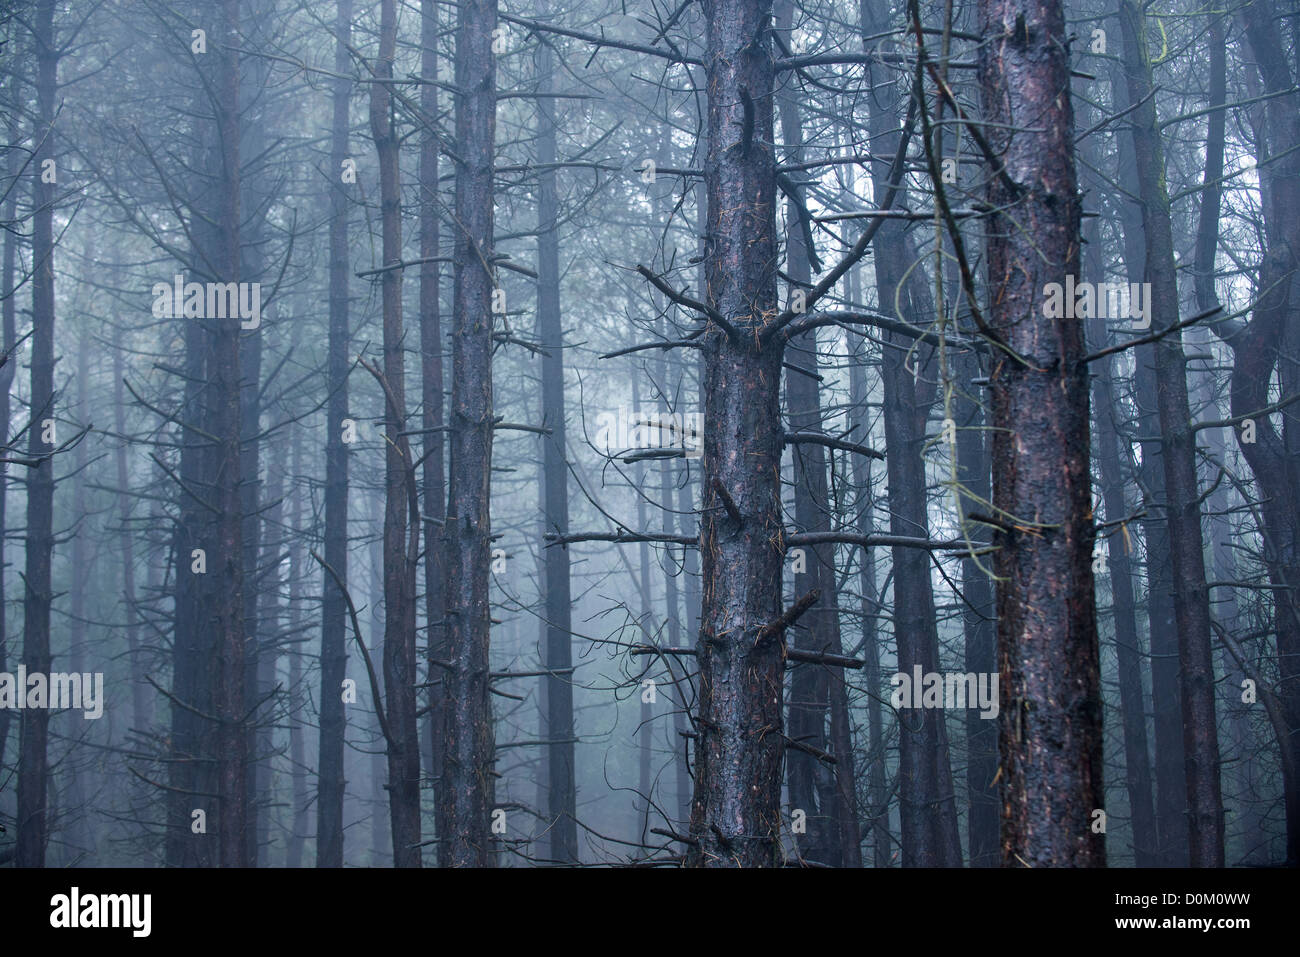 Mature conifer woodland shrouded in wet misty conditions - Stock Image